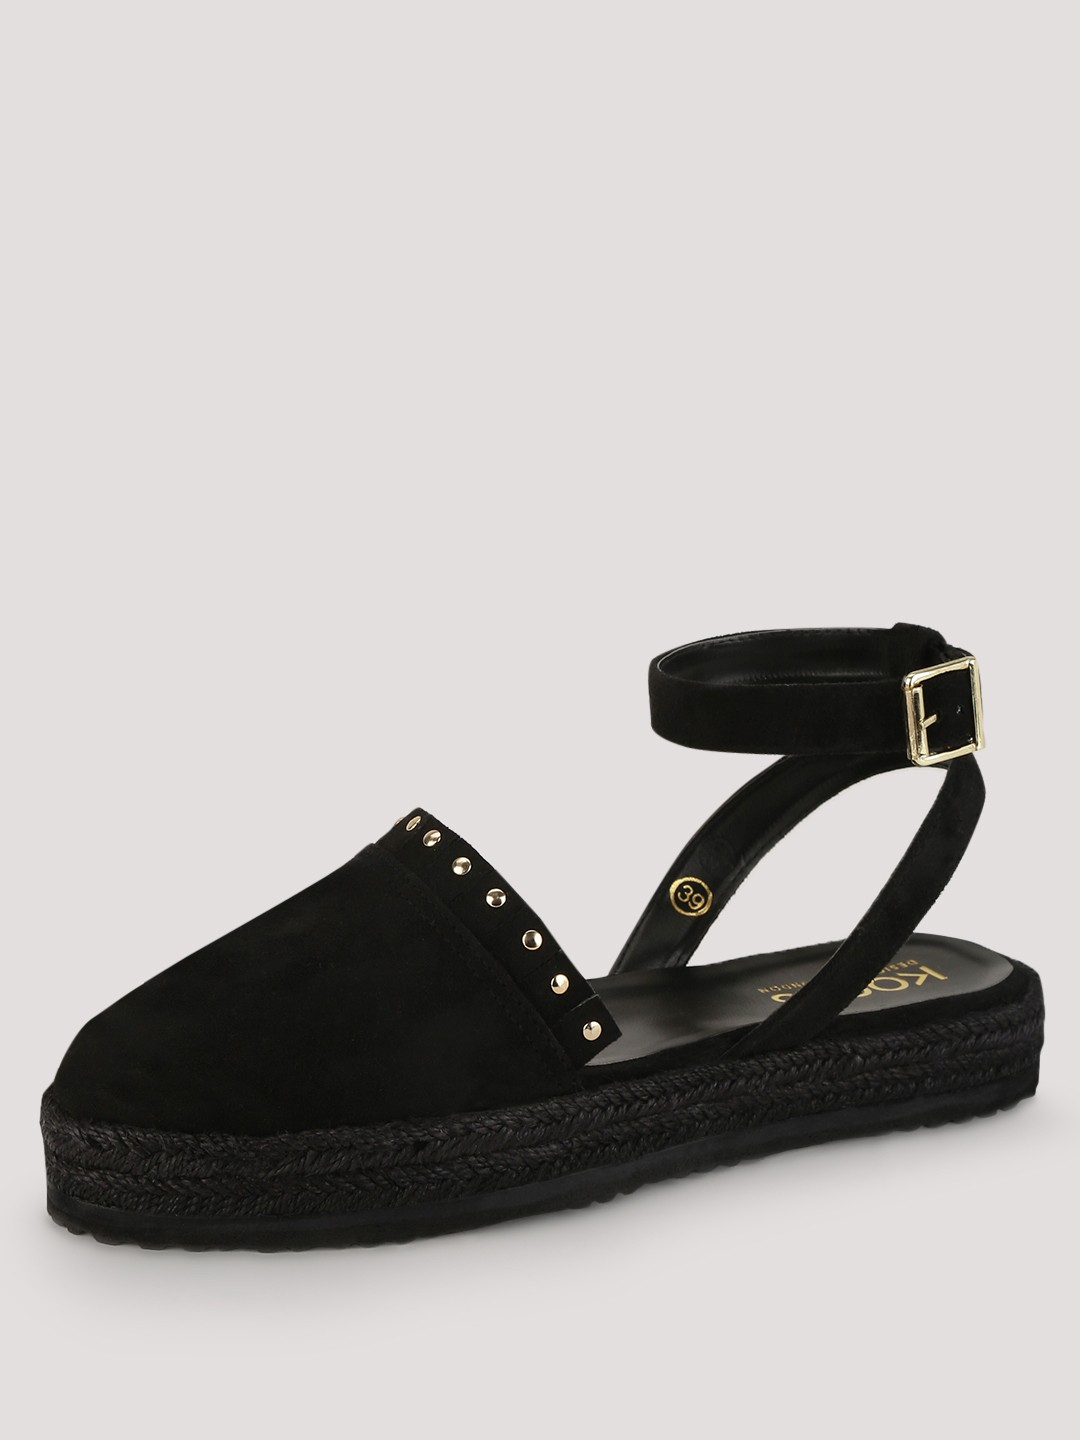 Buy Koovs Stud Detail Espadrille Sandals For Women Women